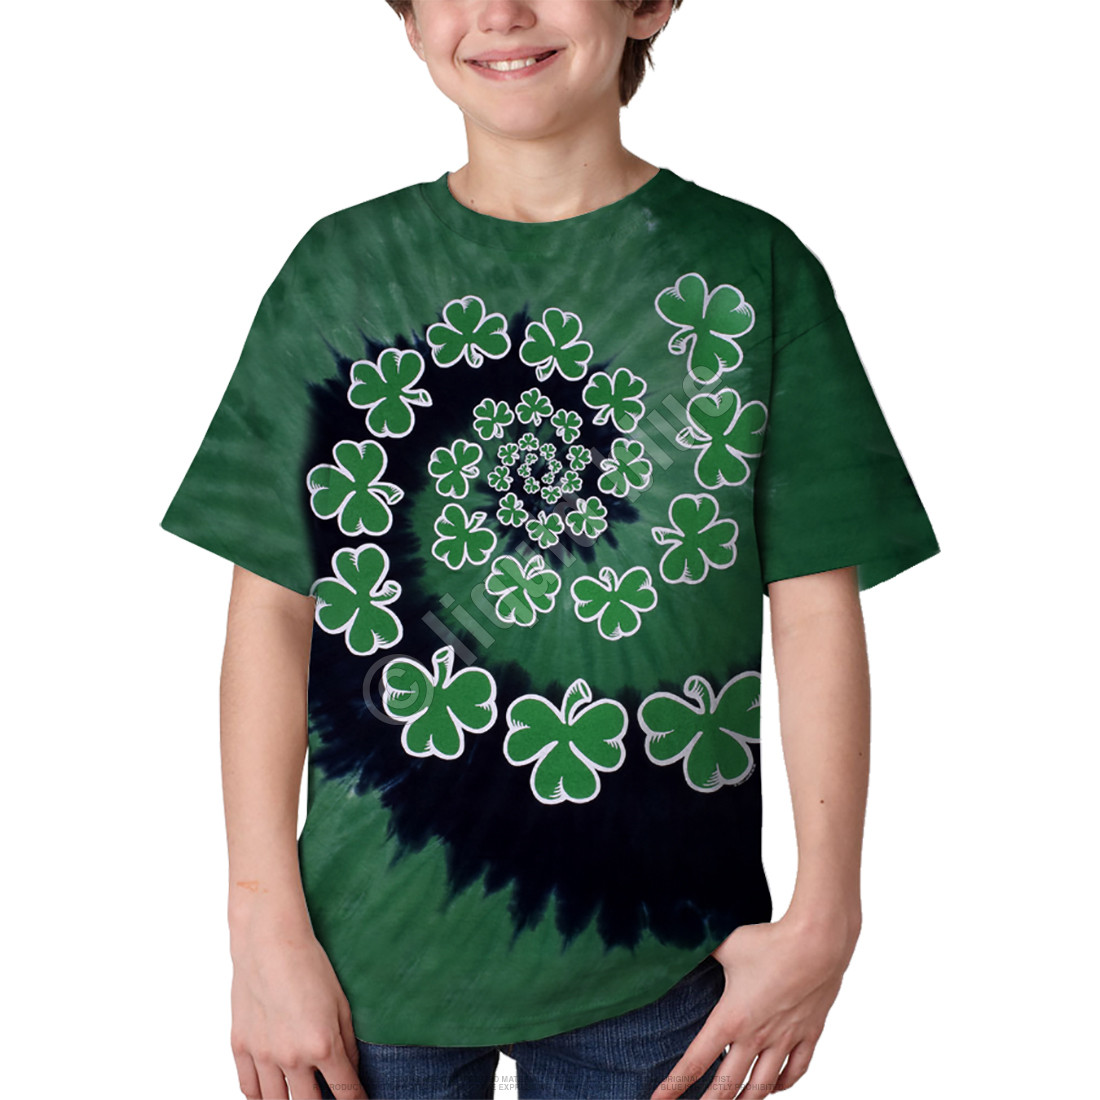 Shamrock Spiral Youth Tie-Dye T-Shirt